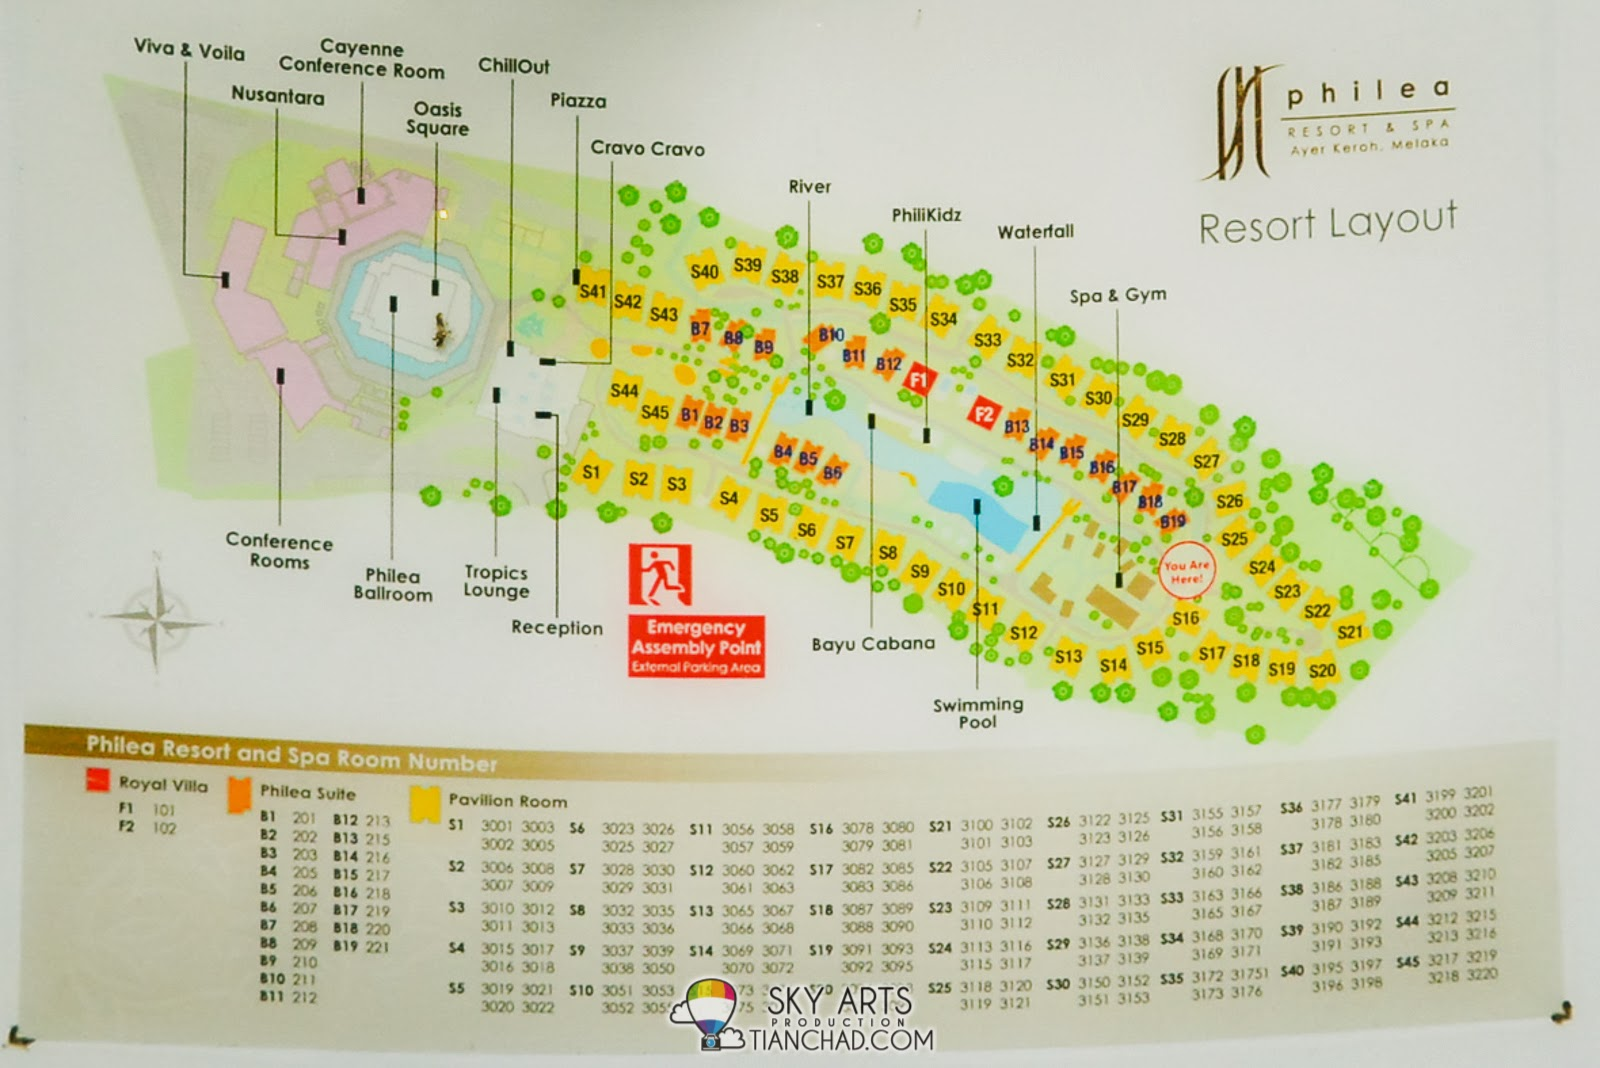 Philea Resort and Spa Layout Plan